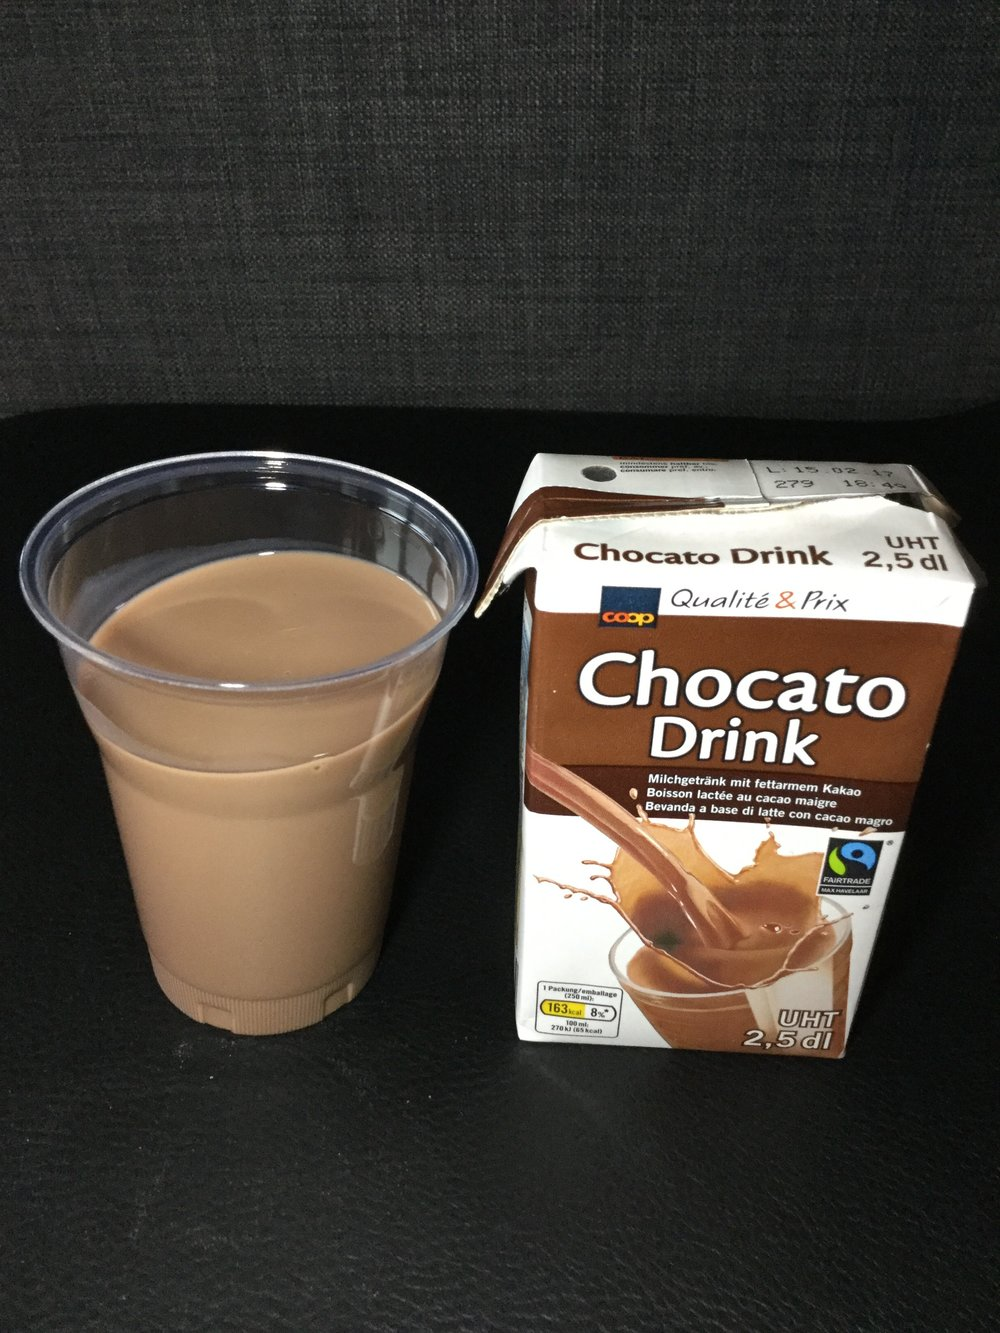 Coop Chocato Drink Cup